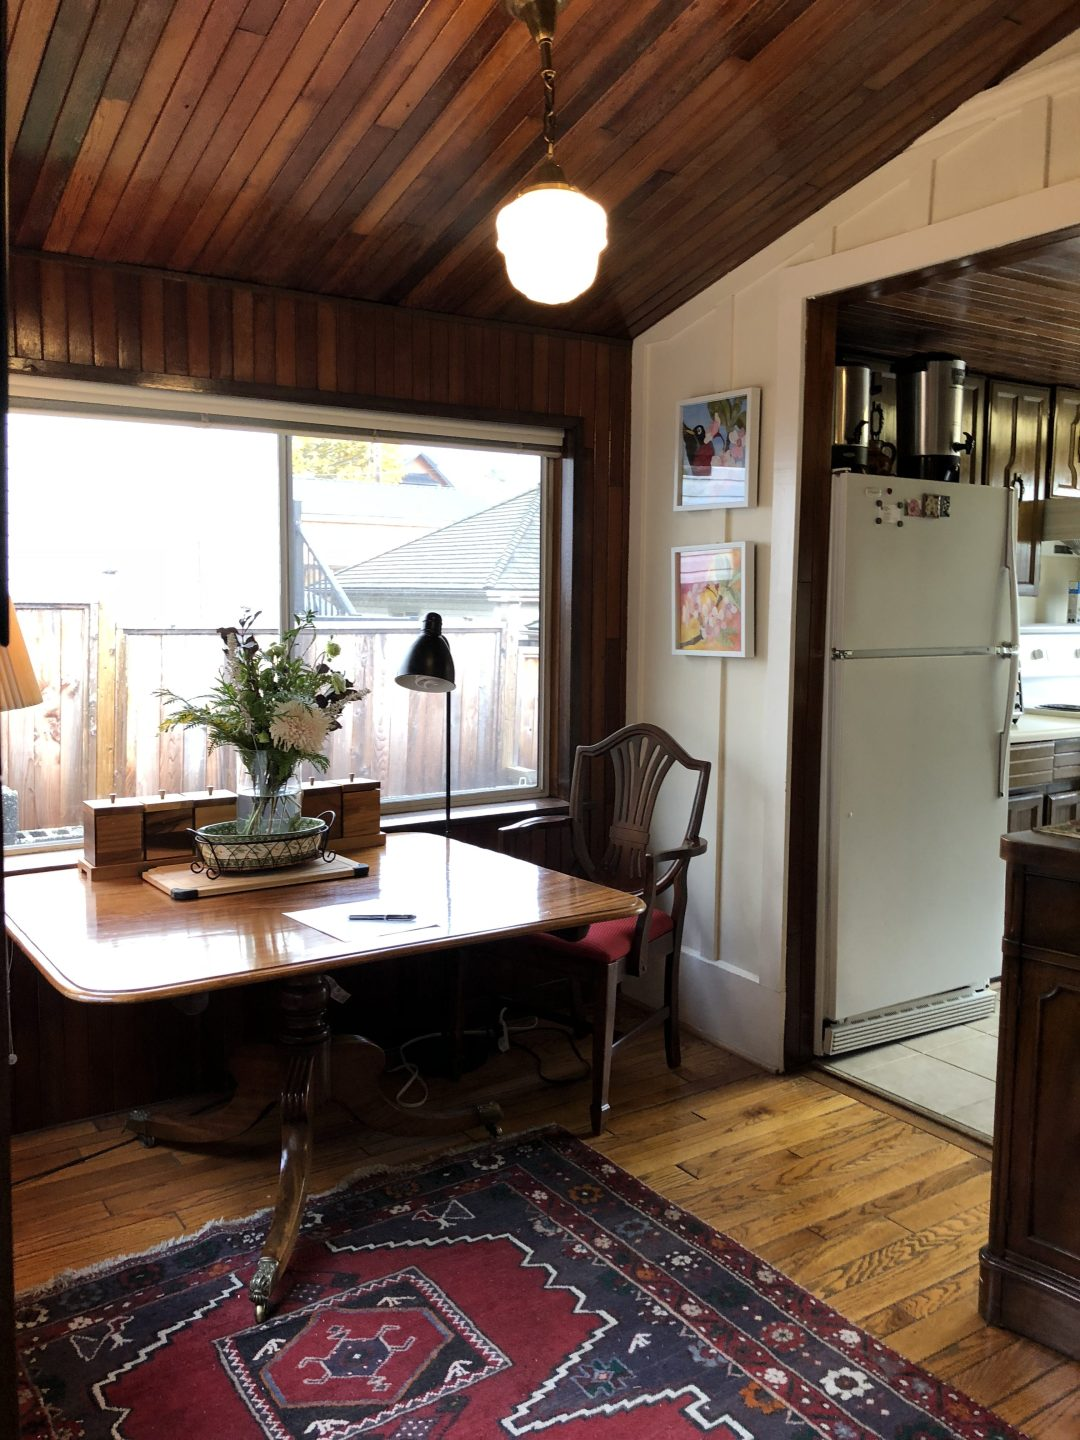 Dining area with view of galley kitchen